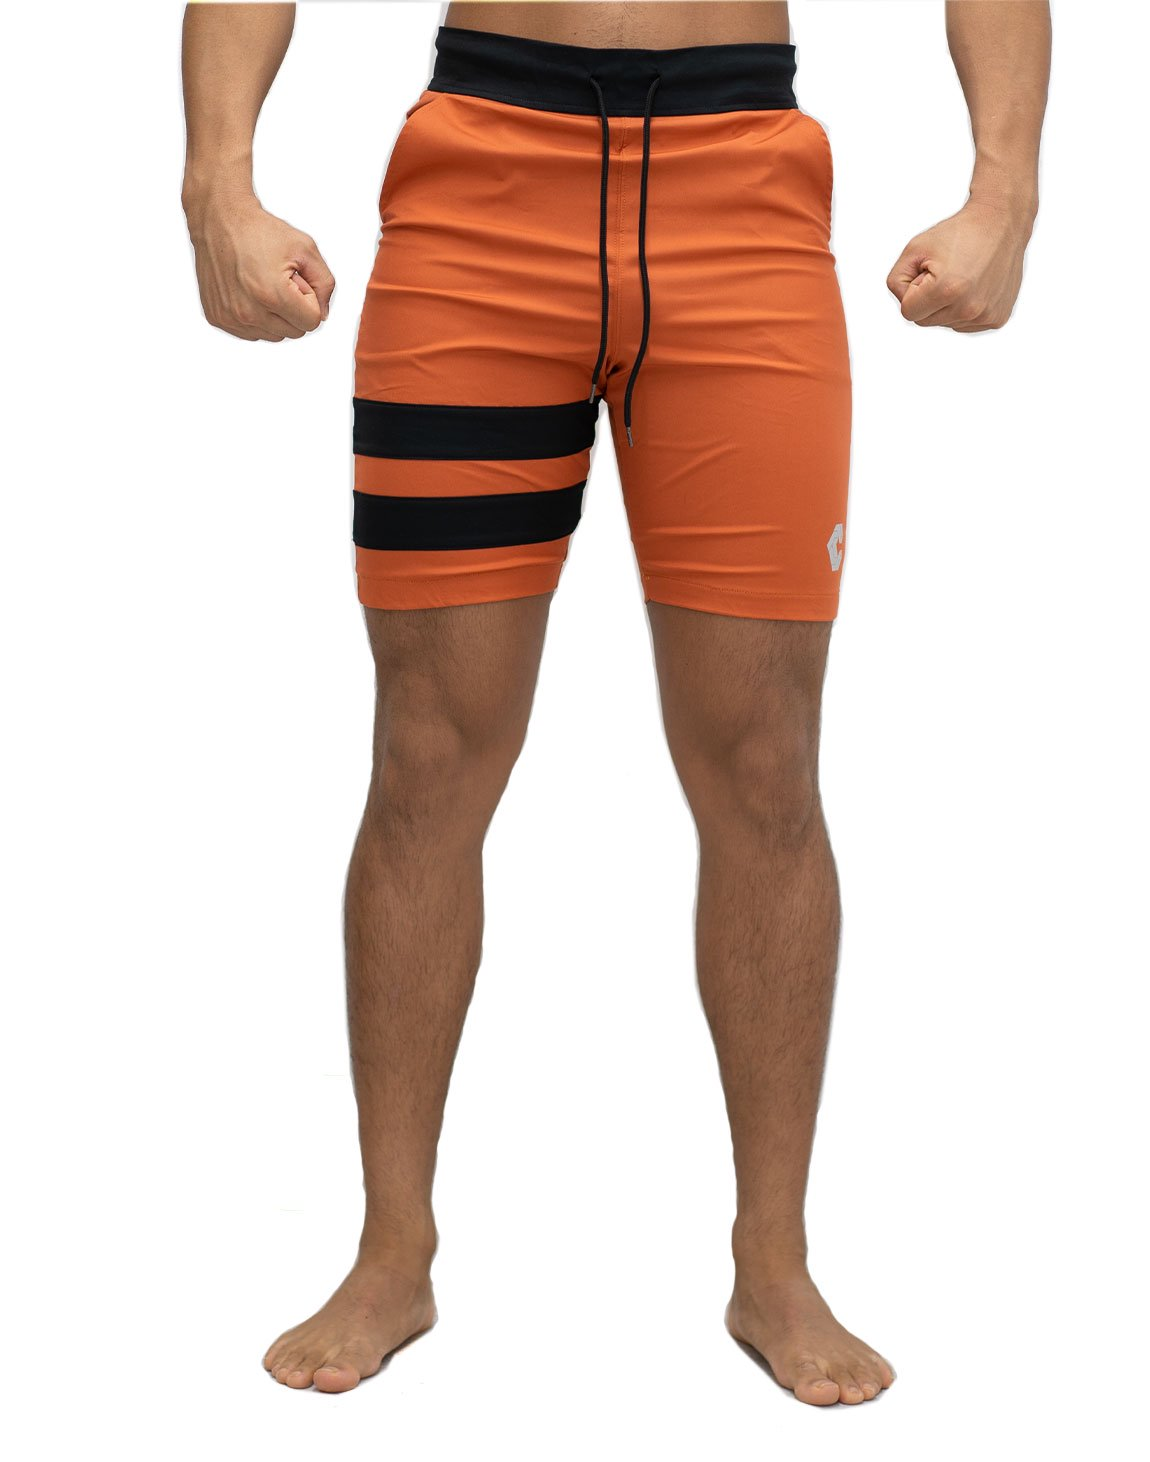 <img class='new_mark_img1' src='https://img.shop-pro.jp/img/new/icons1.gif' style='border:none;display:inline;margin:0px;padding:0px;width:auto;' />CRONOS TIGHT BOARD SHORTS RED